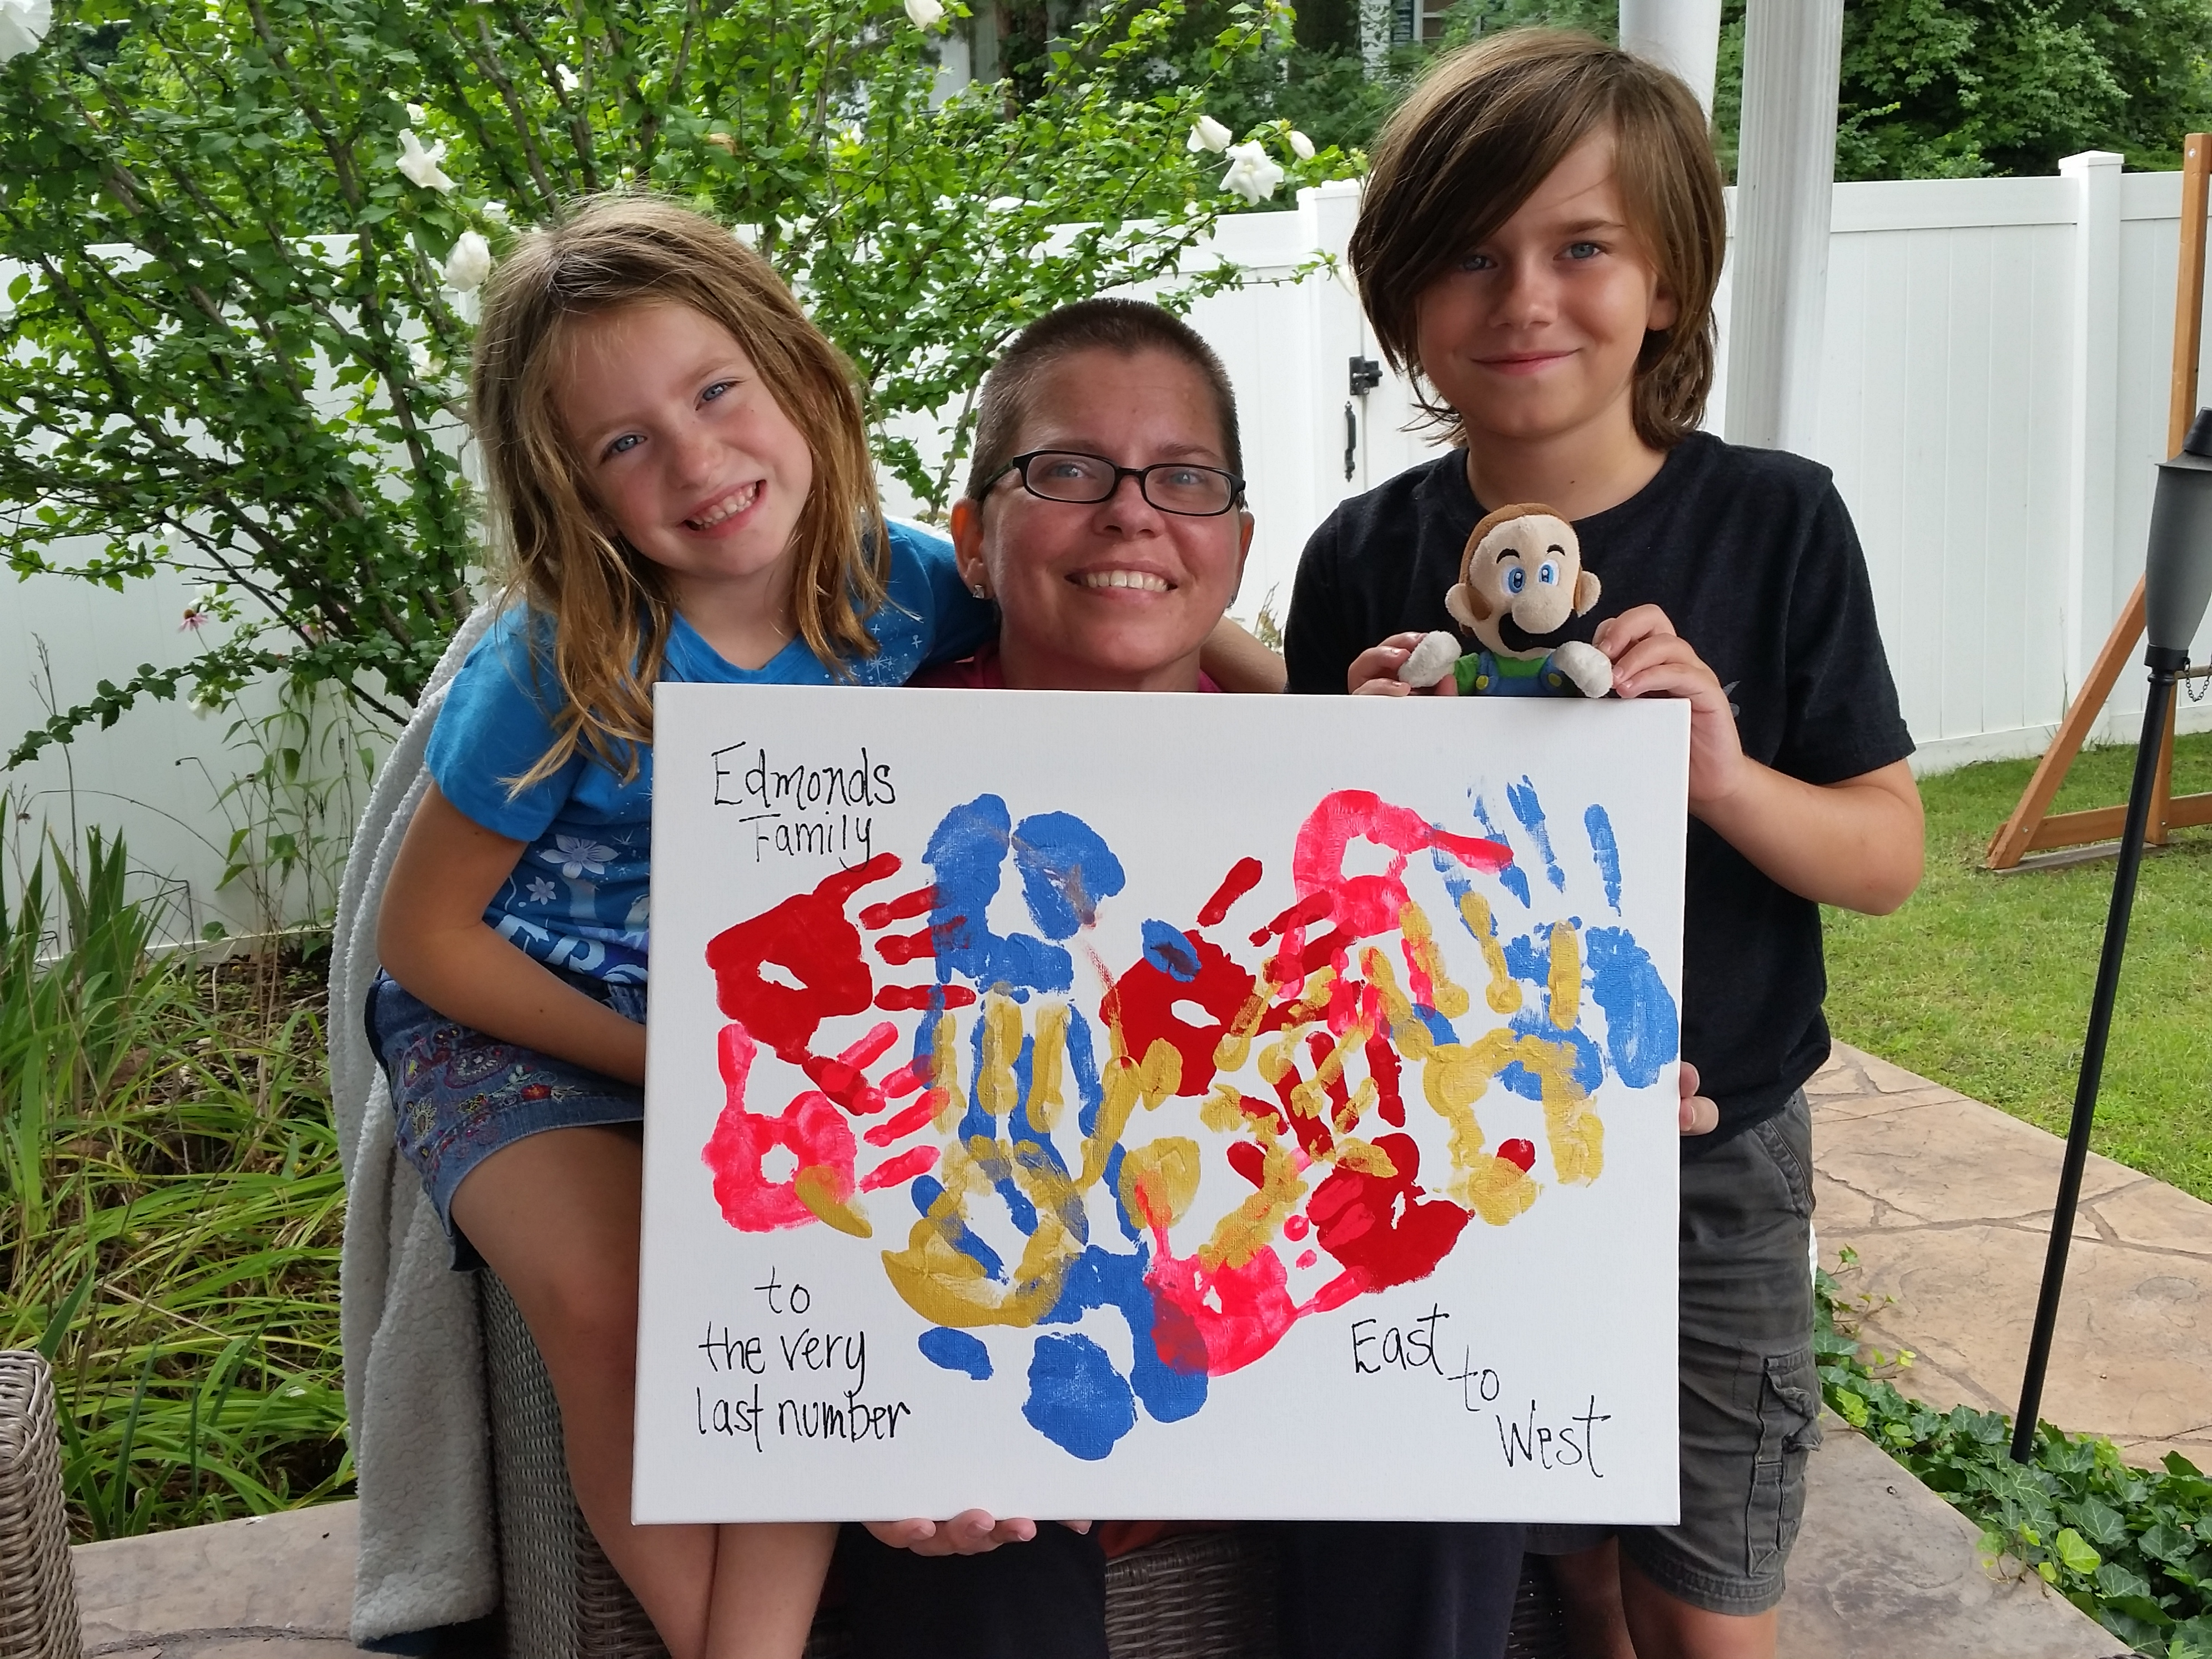 edmonds family with horizons painting